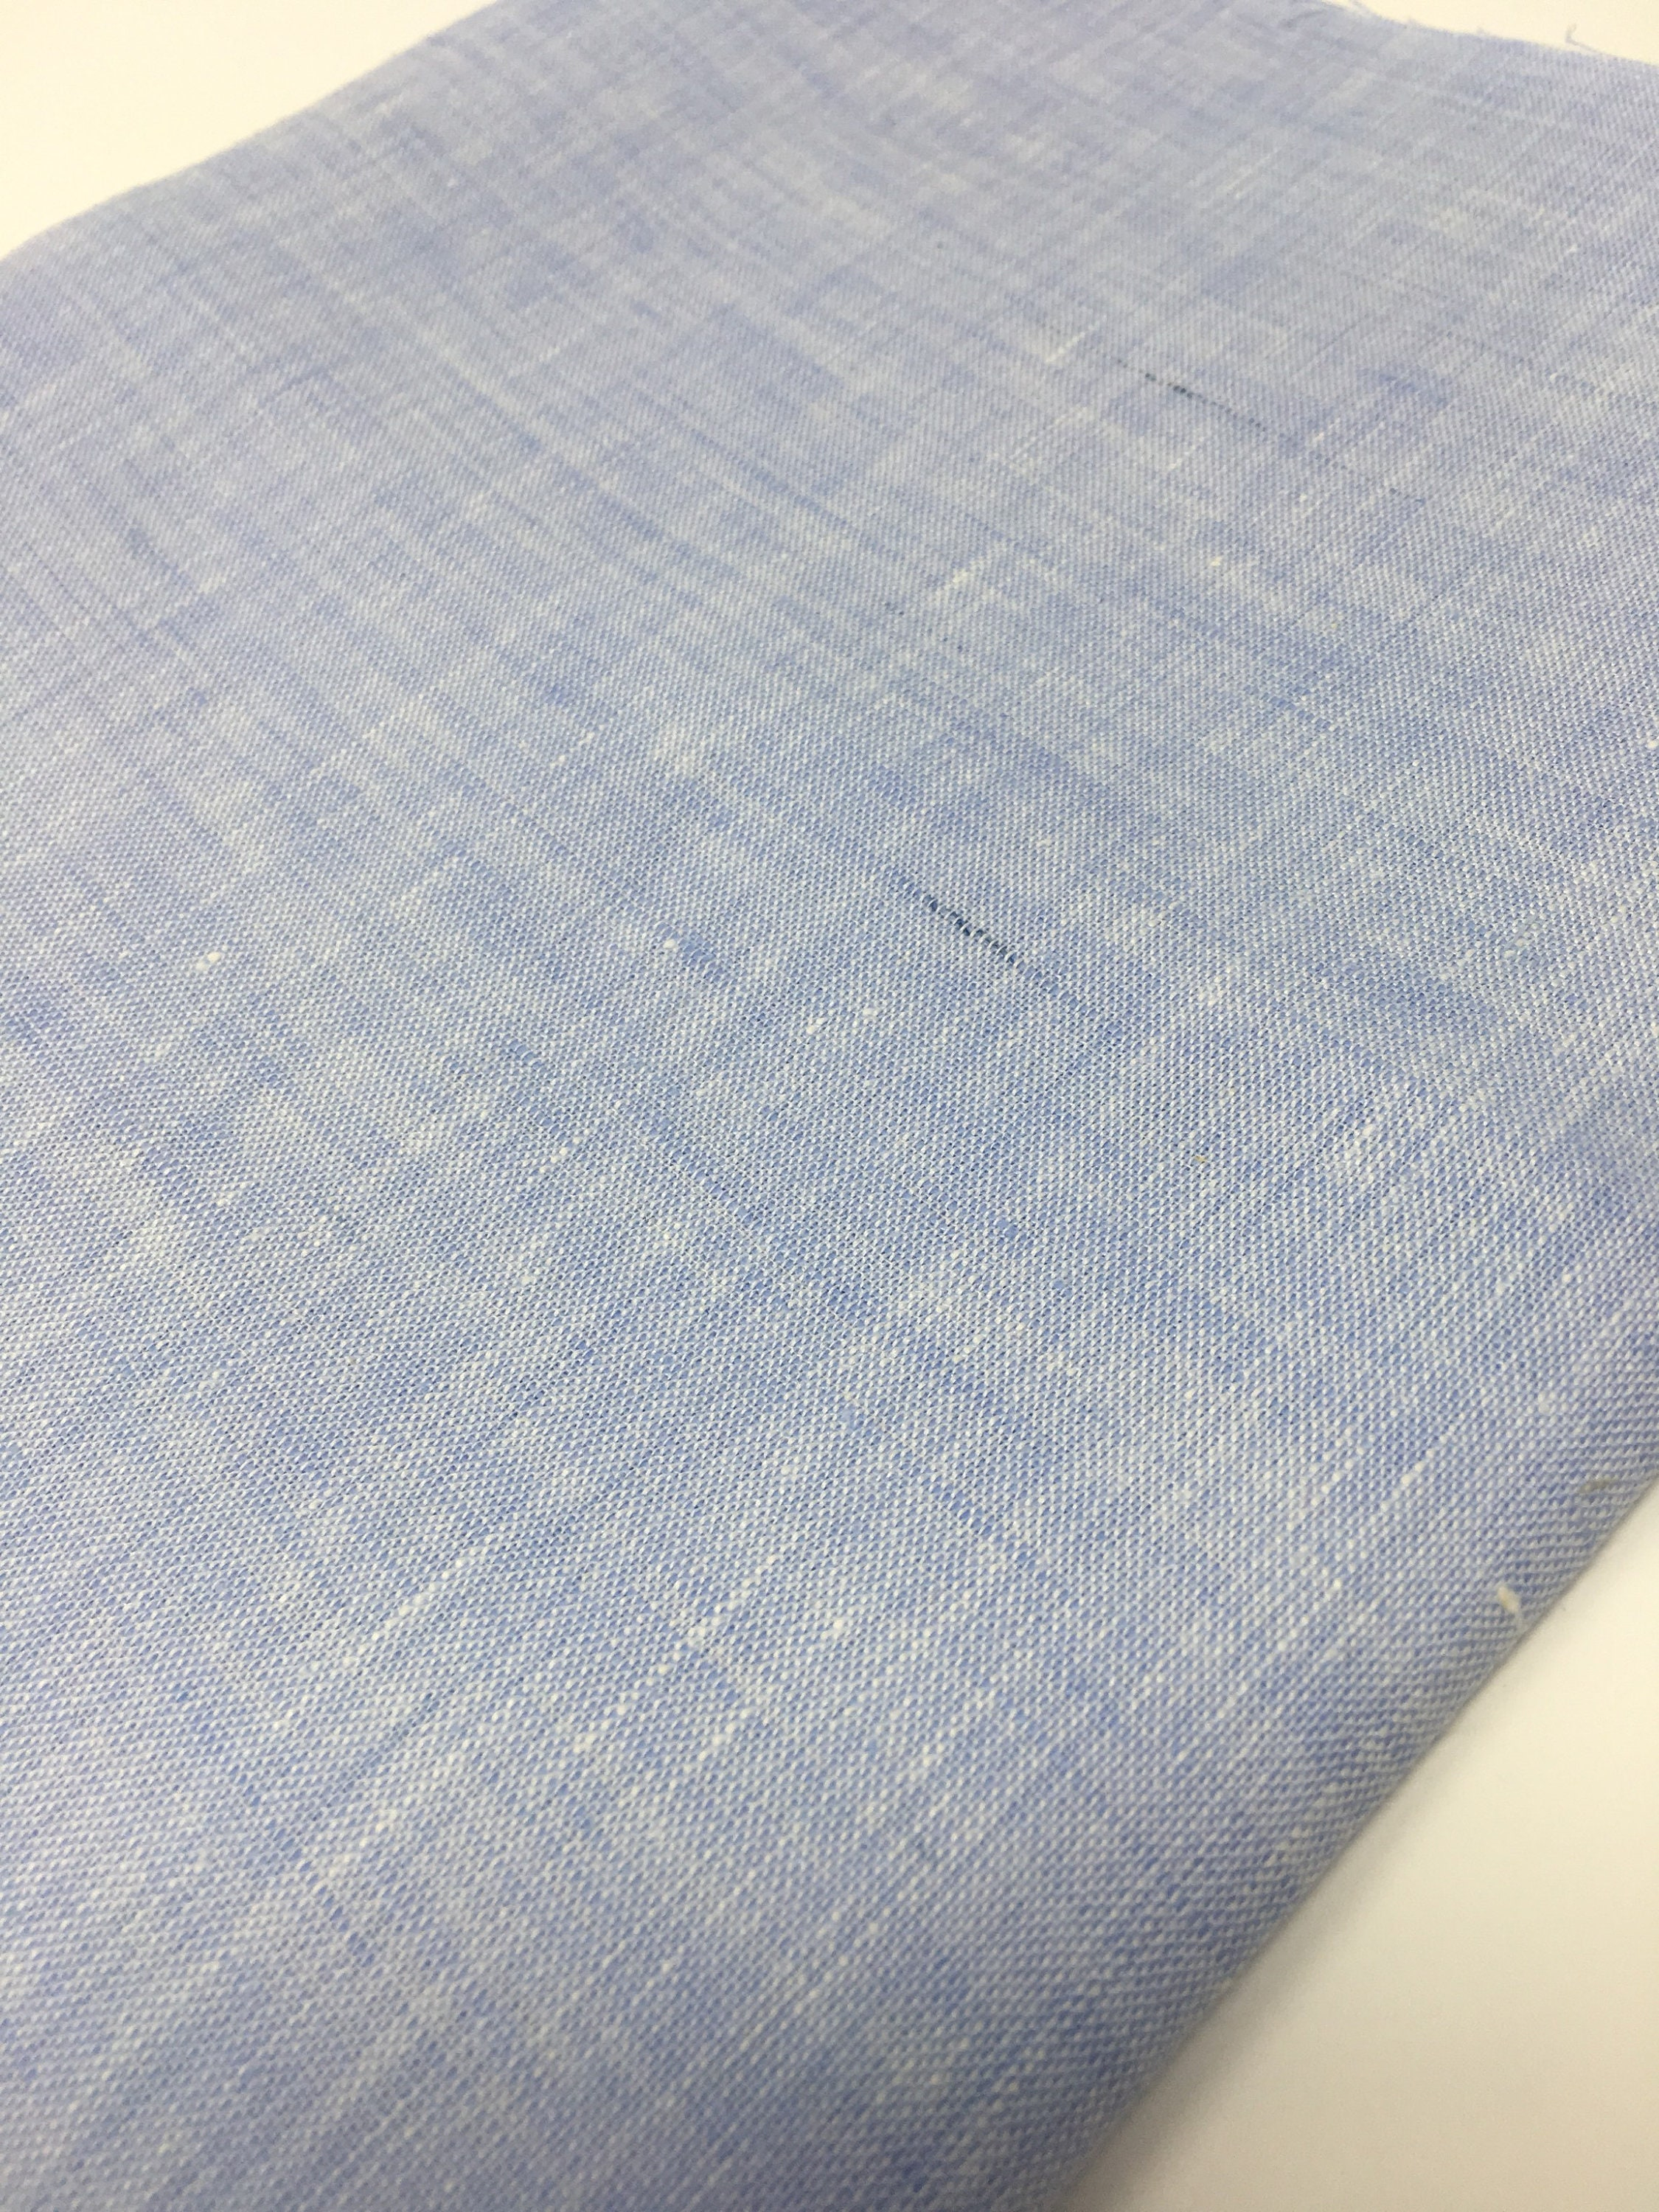 Soft Linen Fabric, 100 % Natural Linen Fabric by the Yard